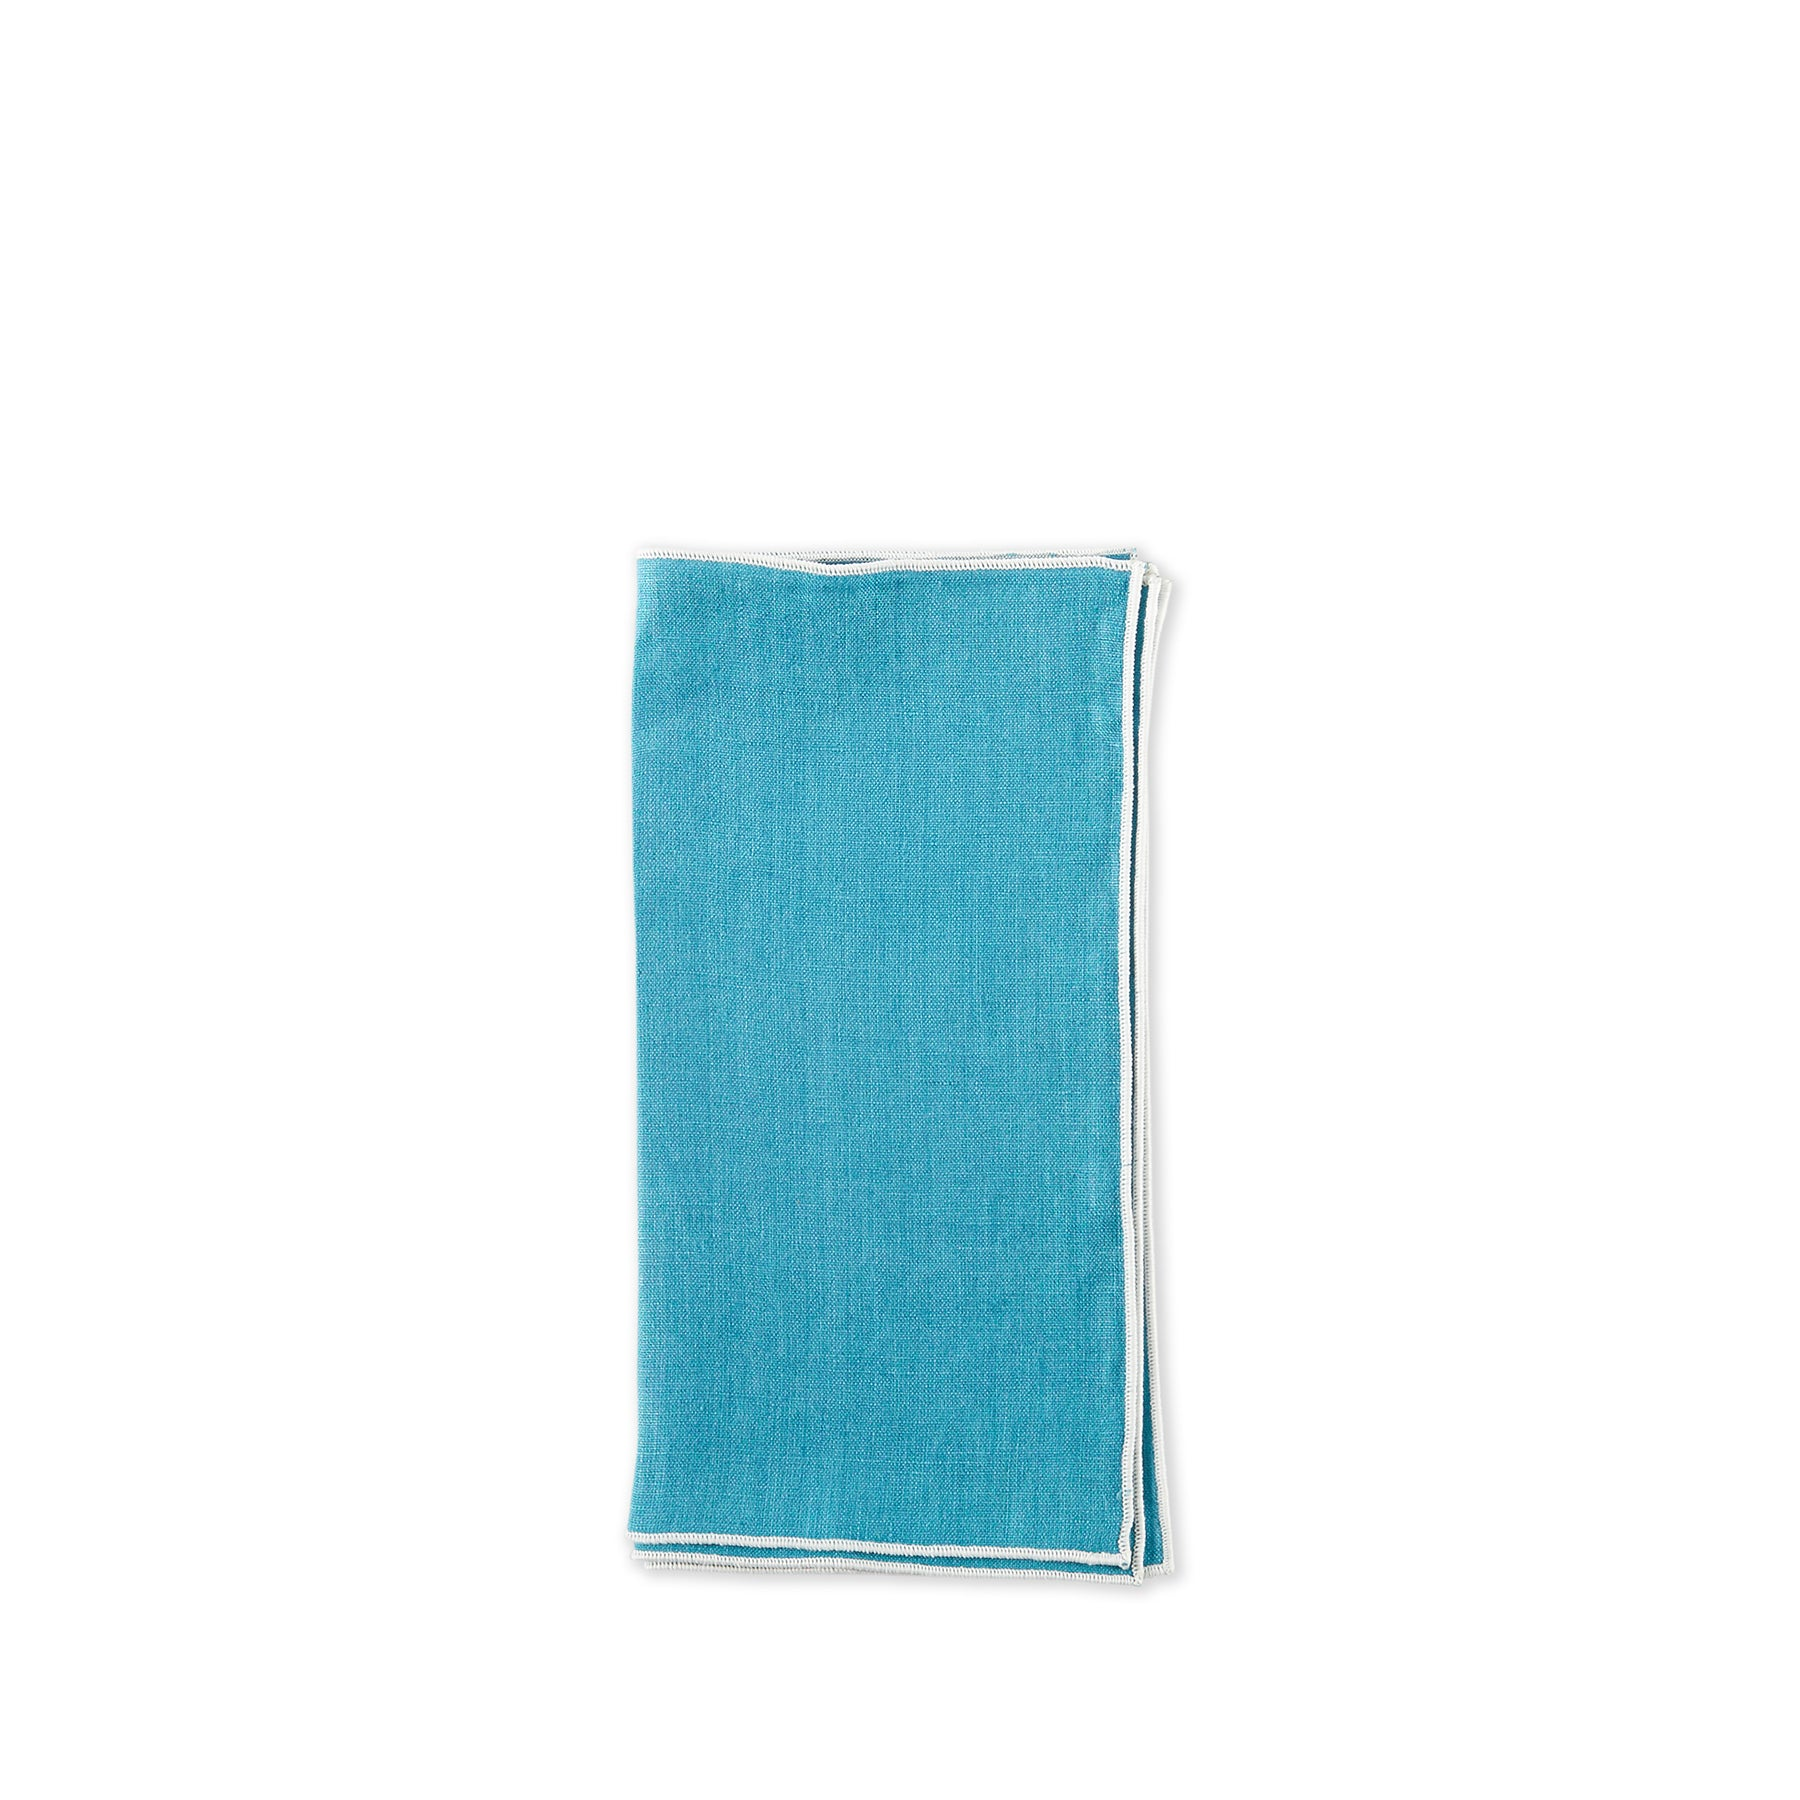 Small Napkins in Grenada Teal (Set of 4) Zoom Image 1